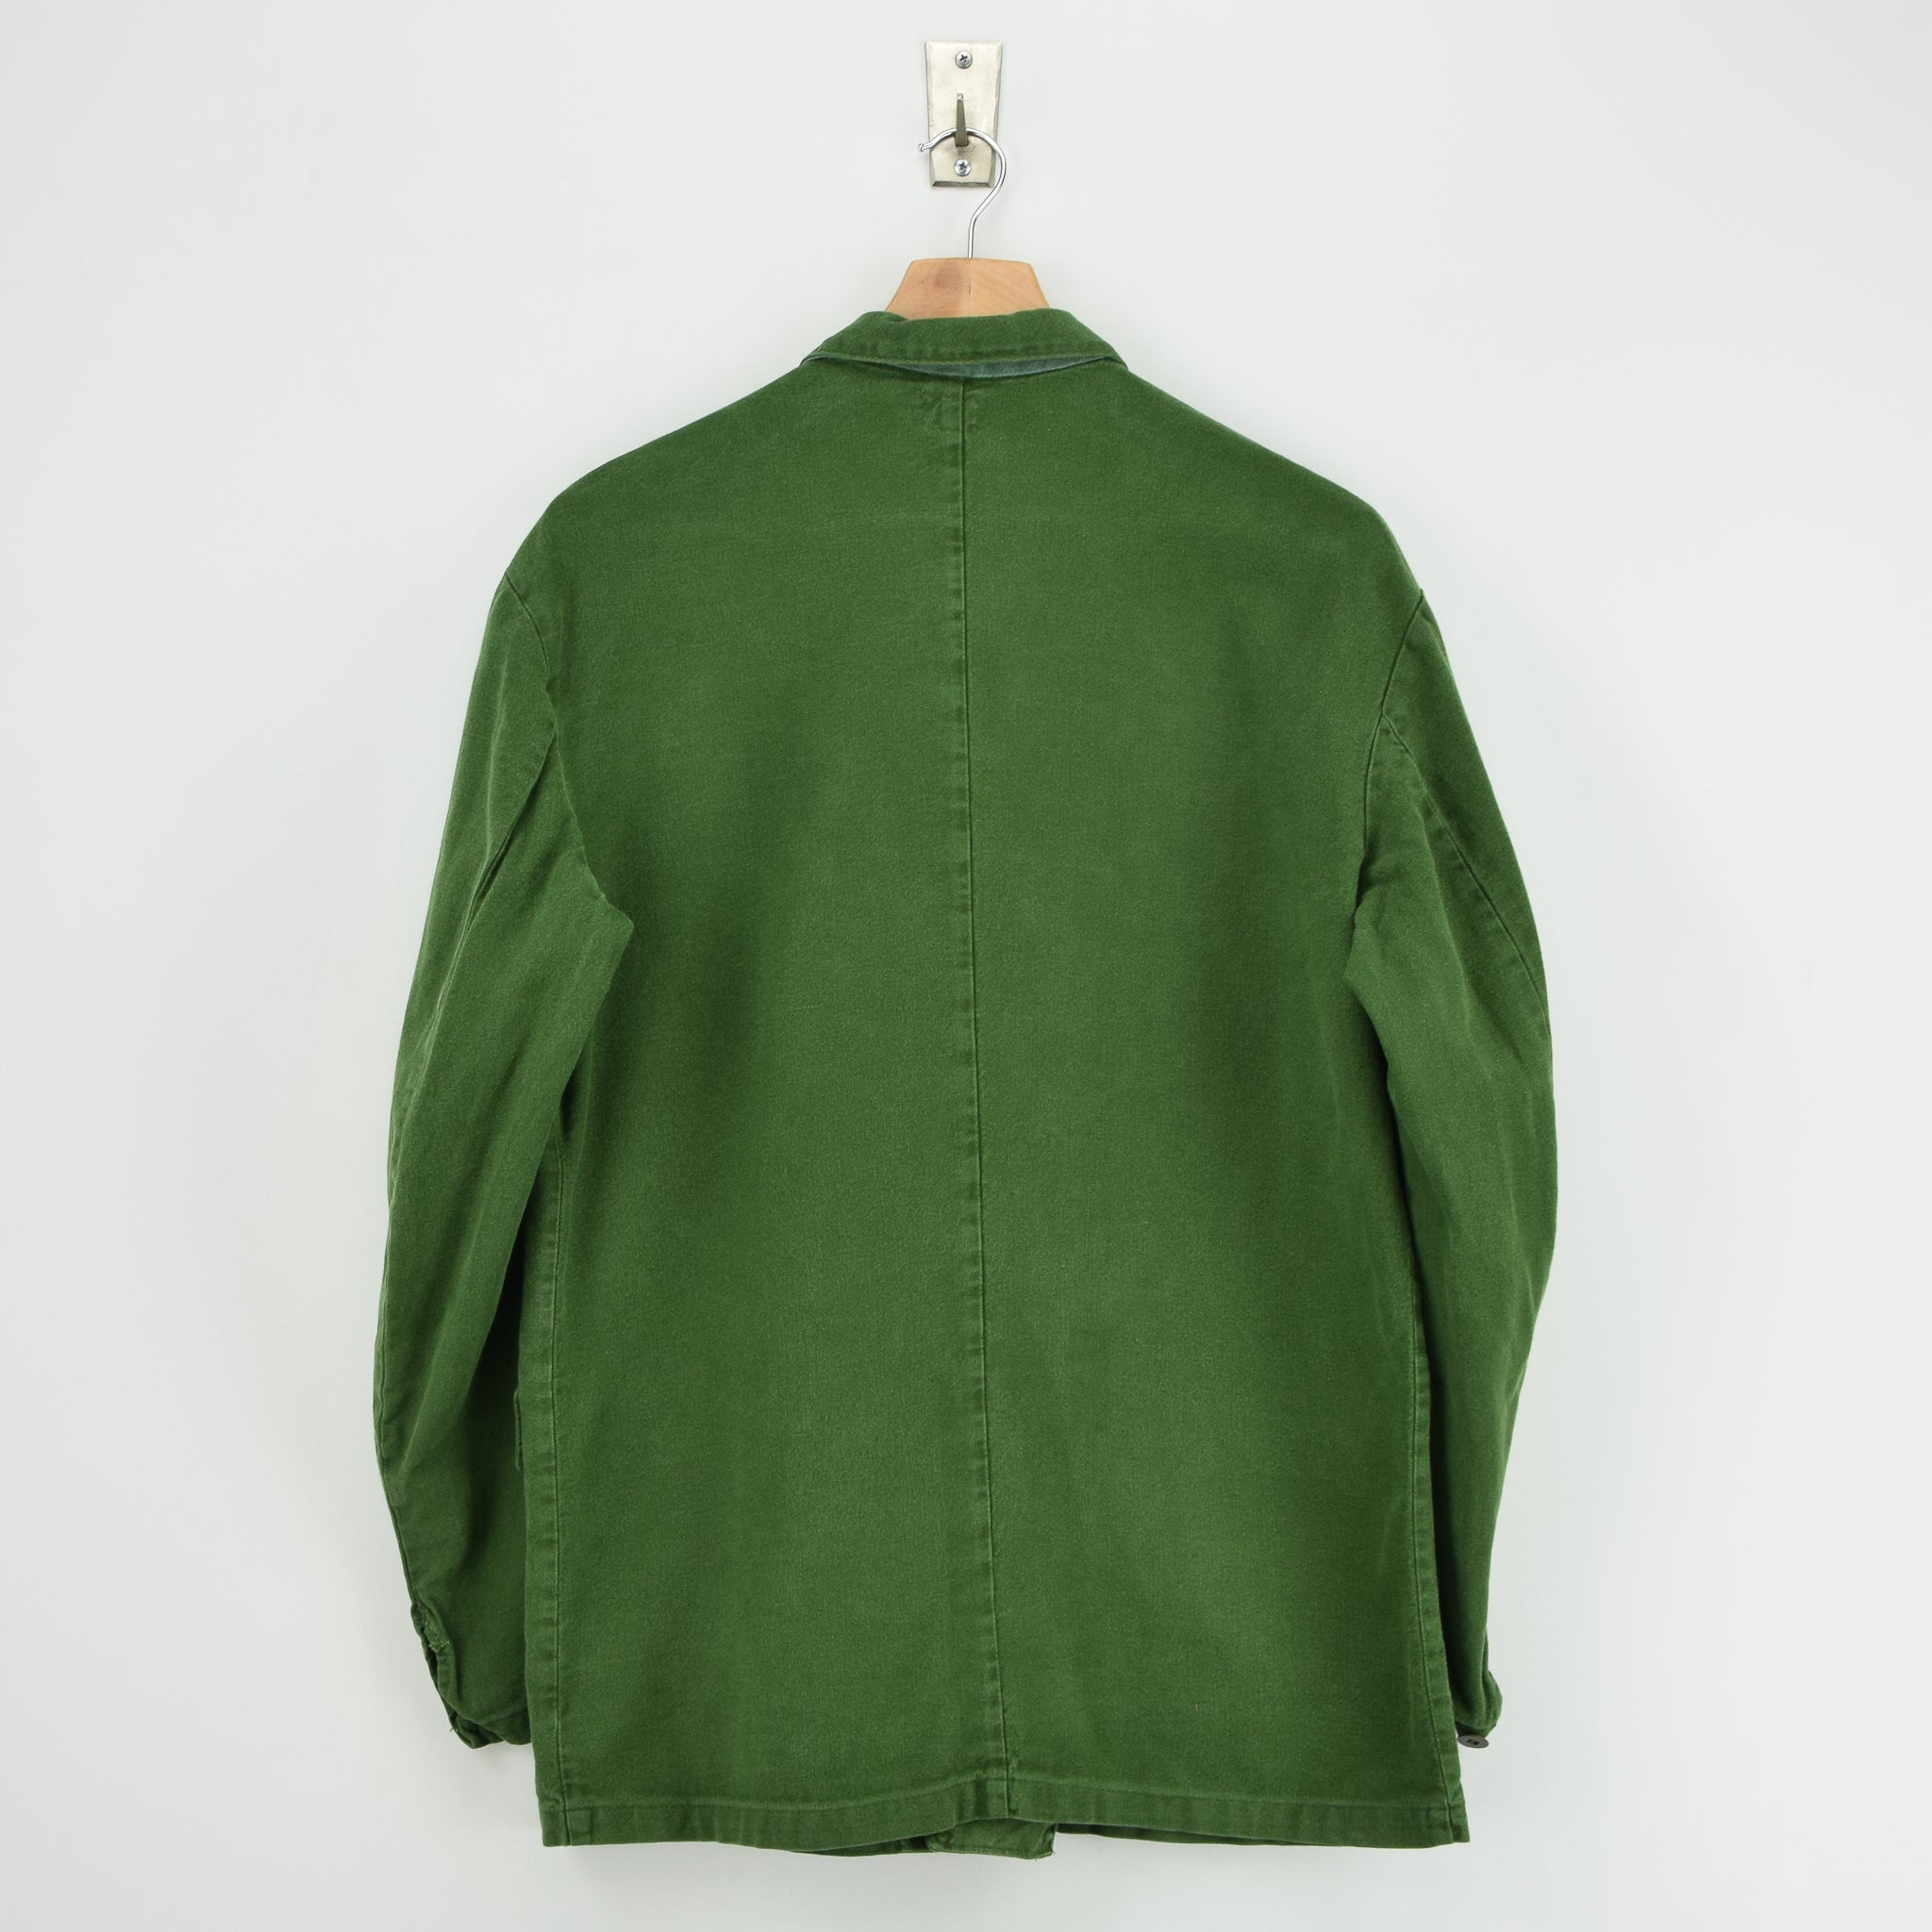 Vintage Swedish Worker Style Green Distressed Military Cotton Field Jacket M / L back